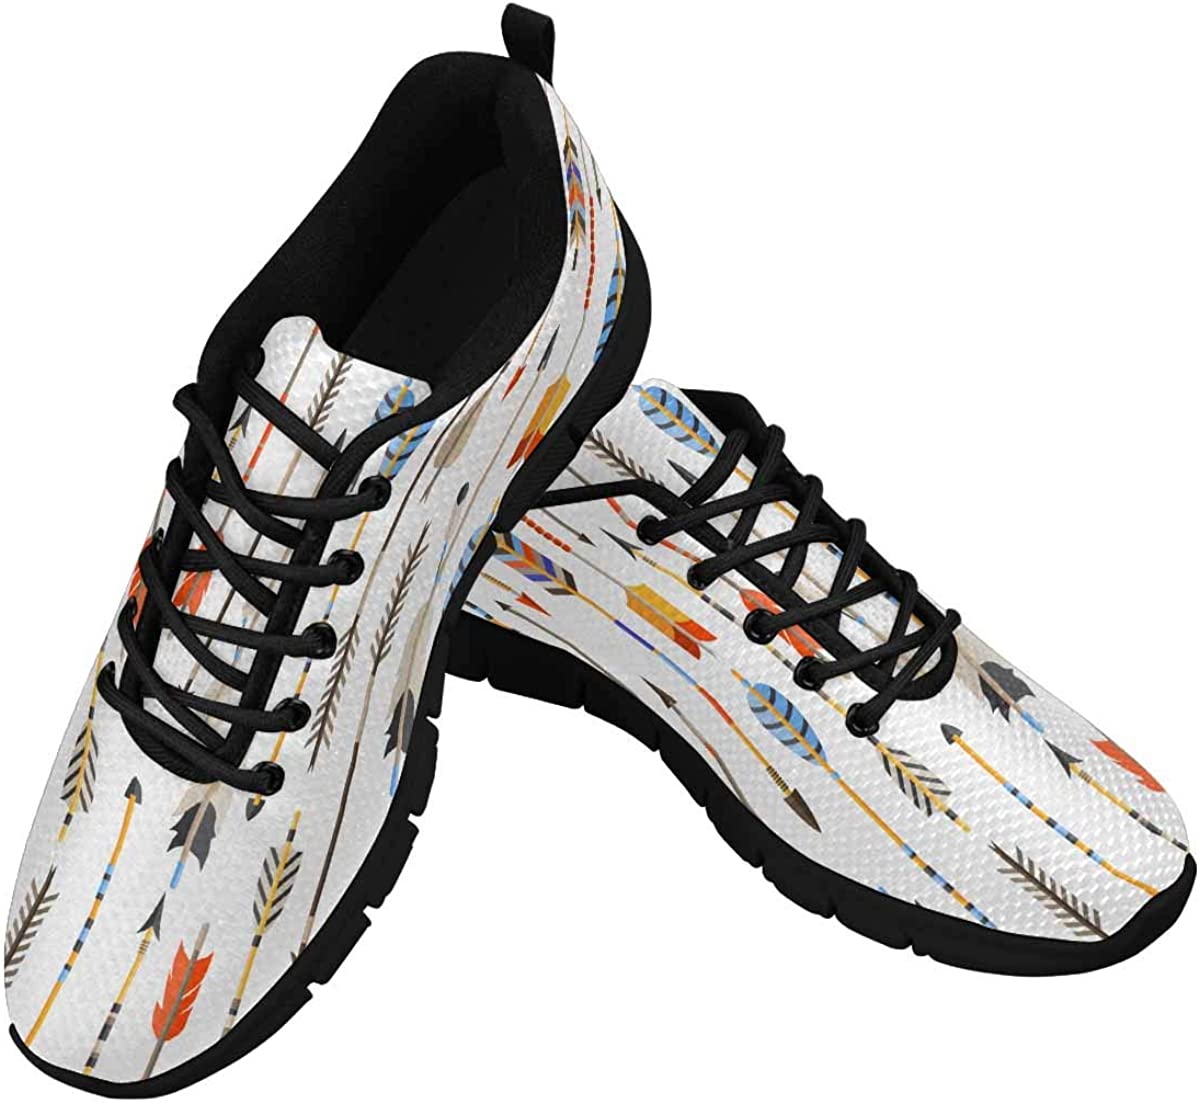 InterestPrint Ethnic Pattern with Indian Arrows Lightweight Mesh Breathable Sneakers for Women